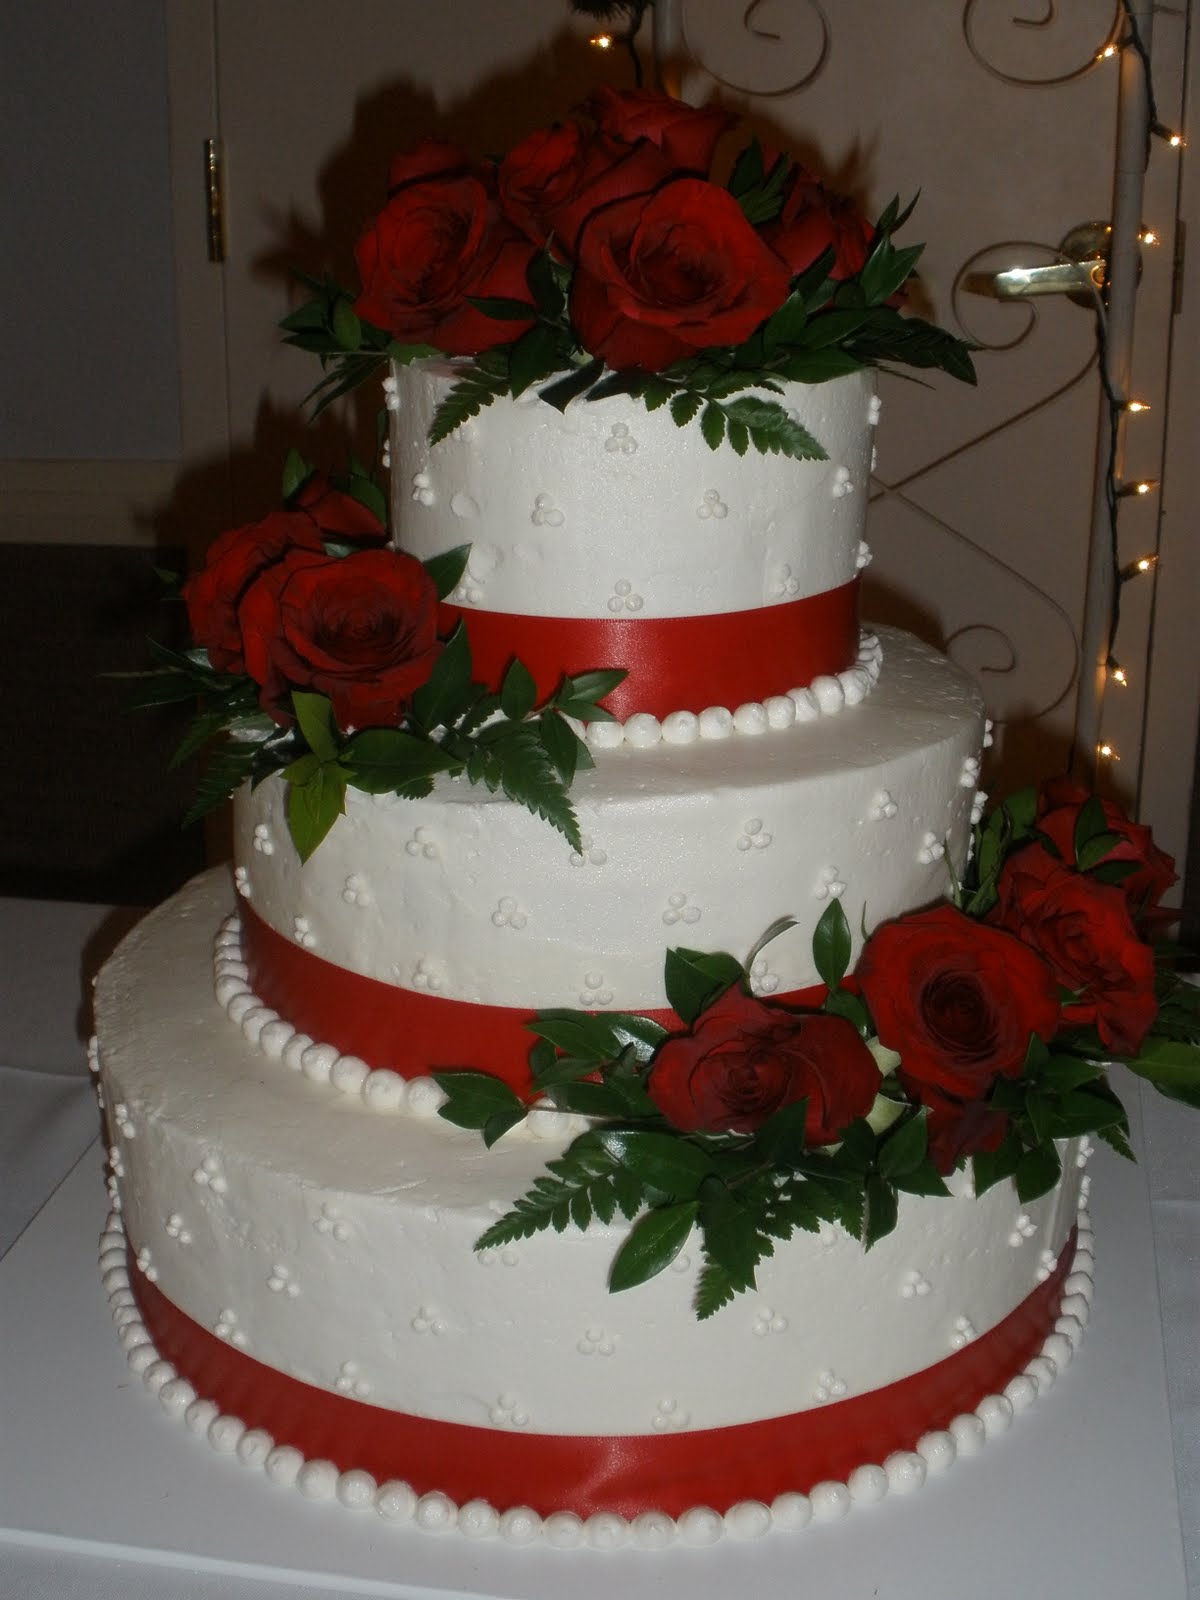 Cake Ideas With Red Roses : It s a piece of cake: Red Rose Buttercream Wedding Cake